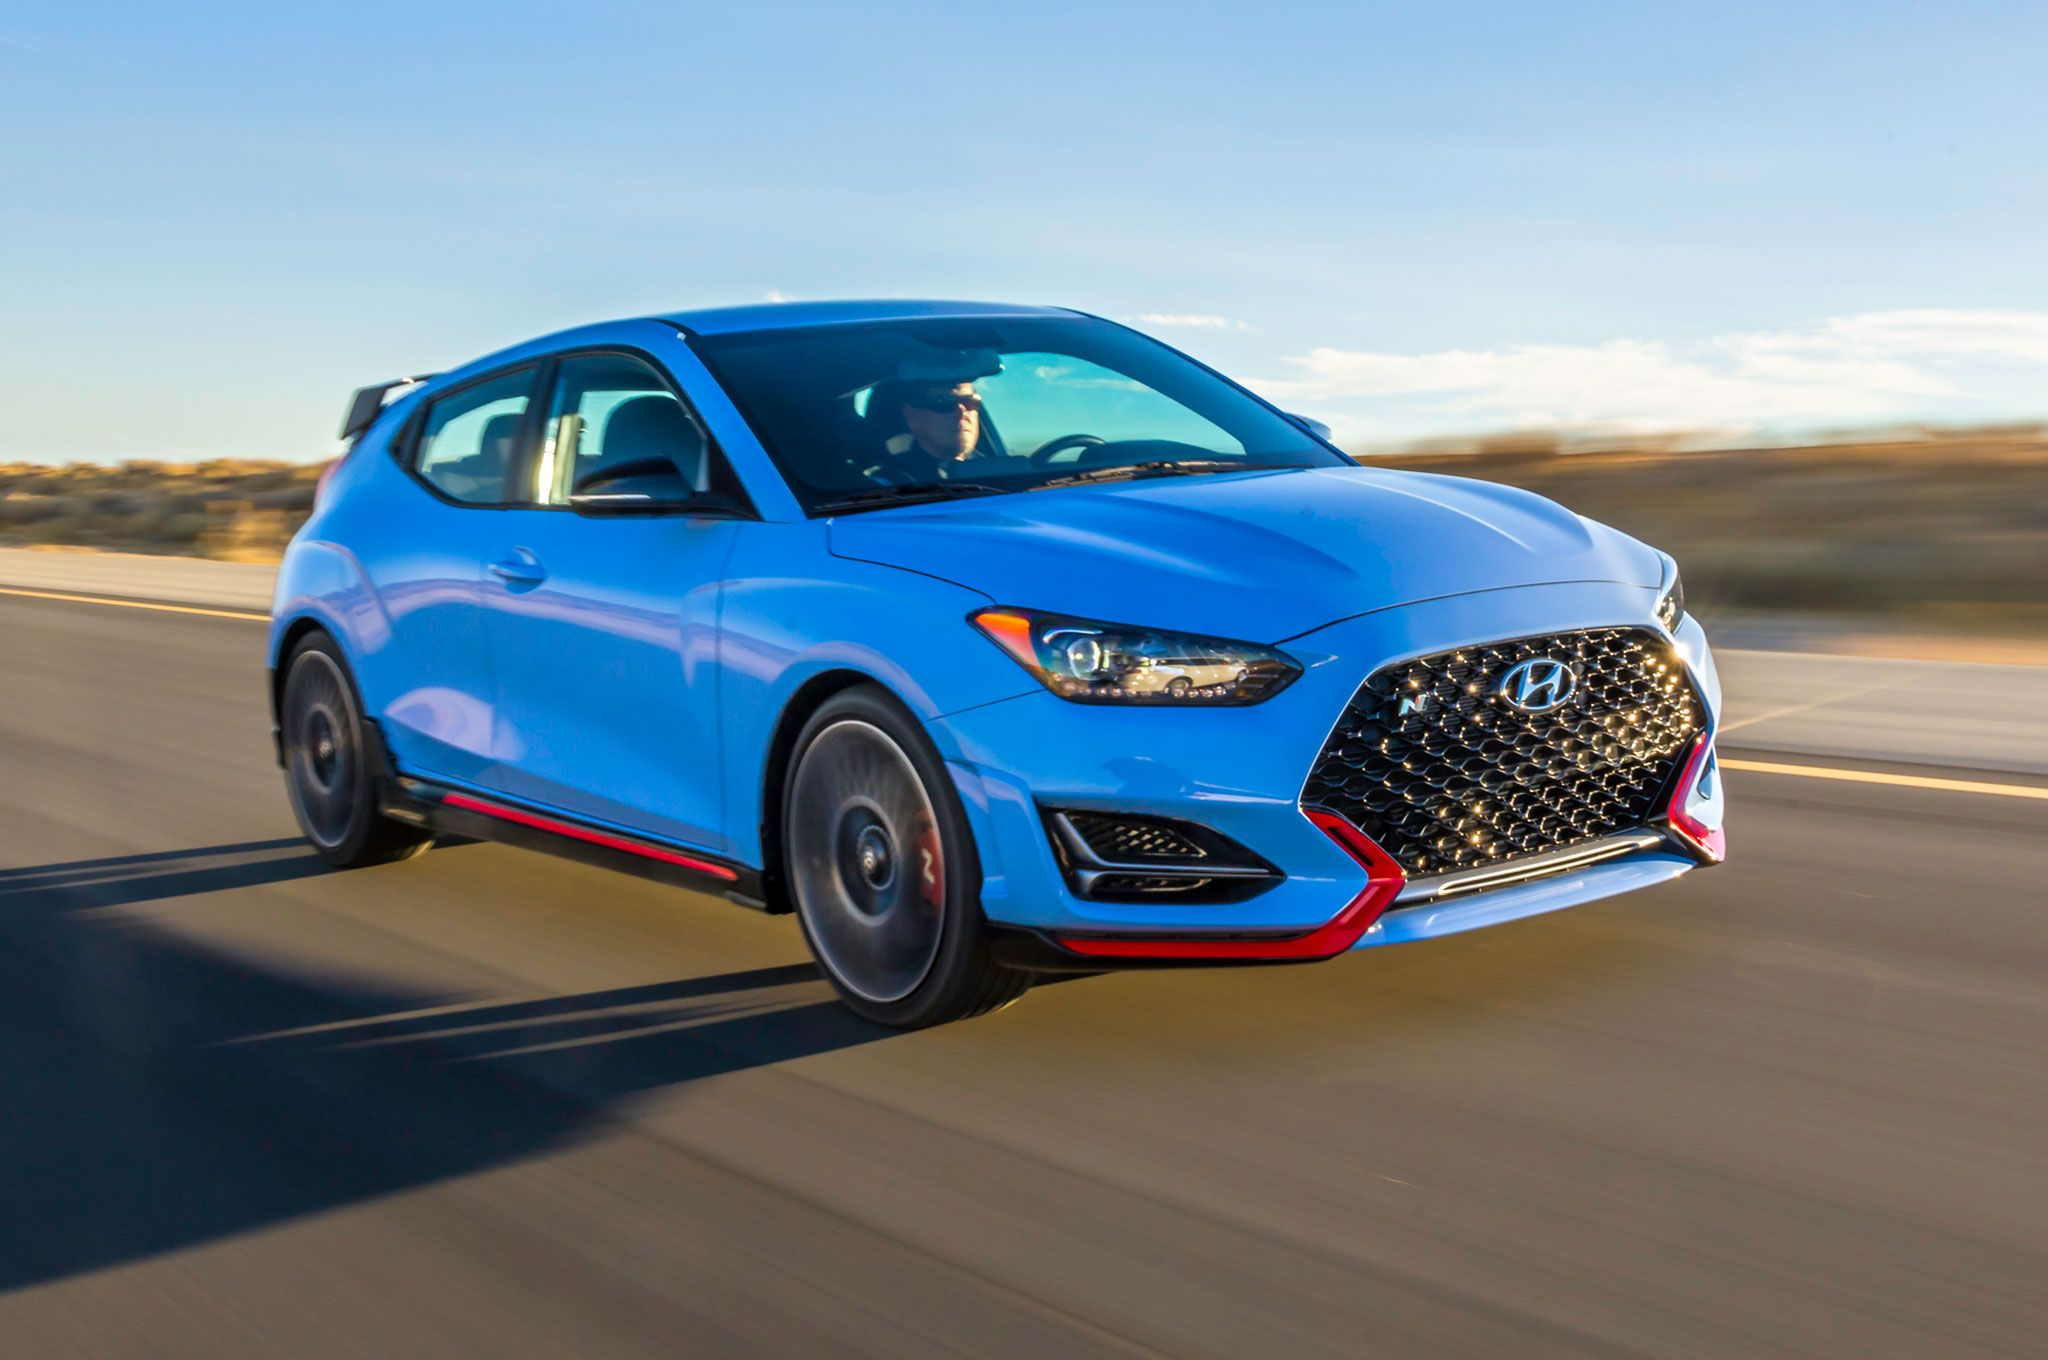 Reliable Sports Cars: Top 10 Most Reliable New Car Brands In Australia For 2019